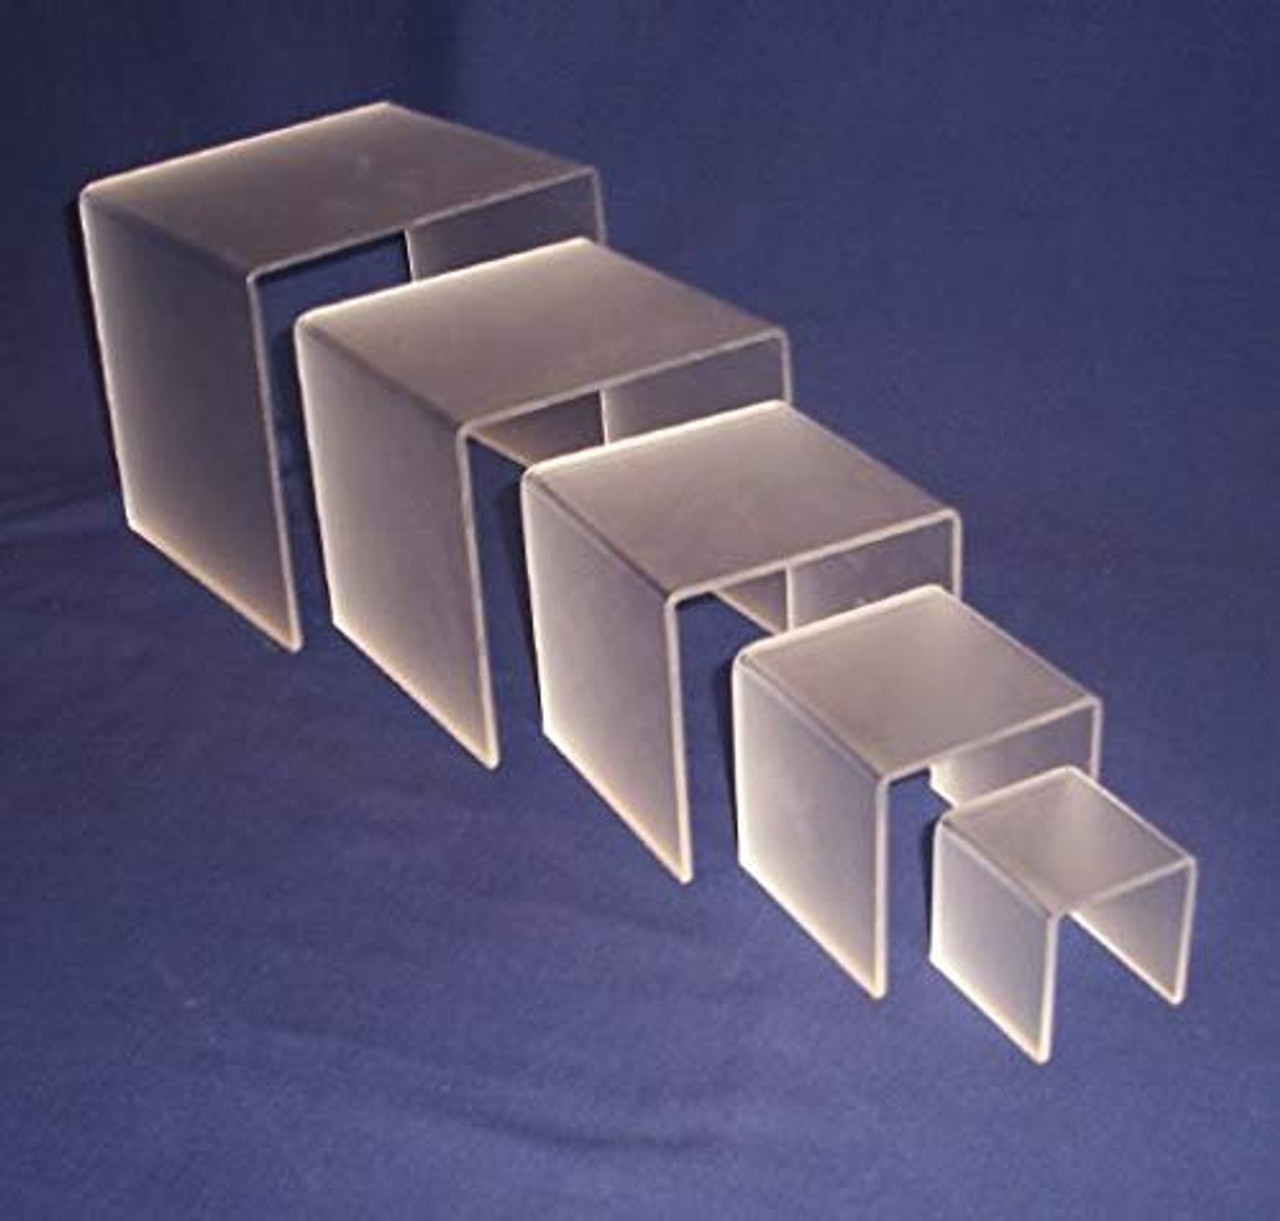 5 Piece Square Acrylic Riser Set, Frosted, 2 Sets Included